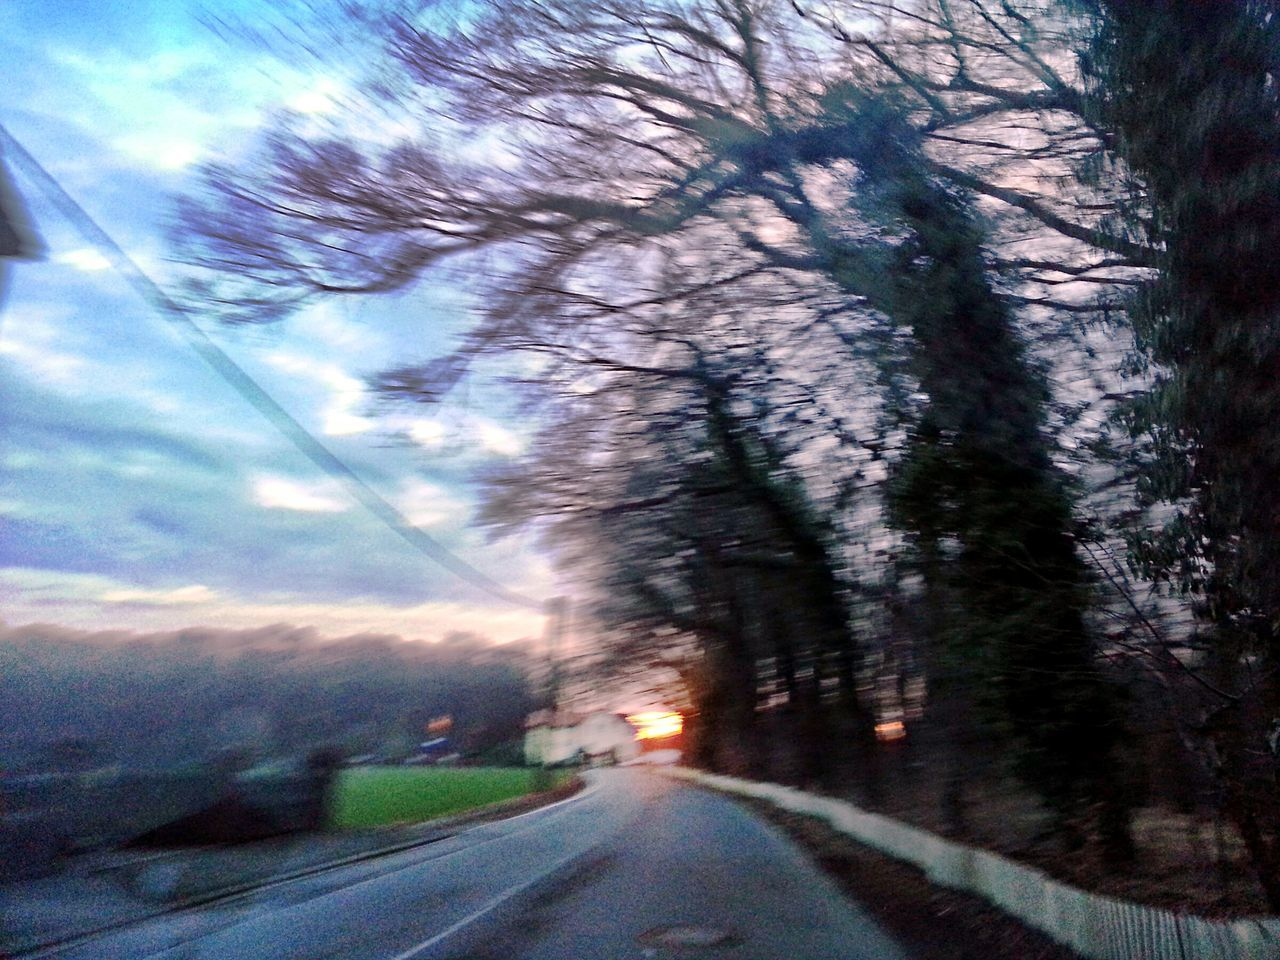 Der Wald lebt ... Tree Sky Cloud - Sky Transportation No People Nature The Way Forward Outdoors Land Vehicle Sunset Road Day Scary Wood Treescape On The Way Home Tranquility